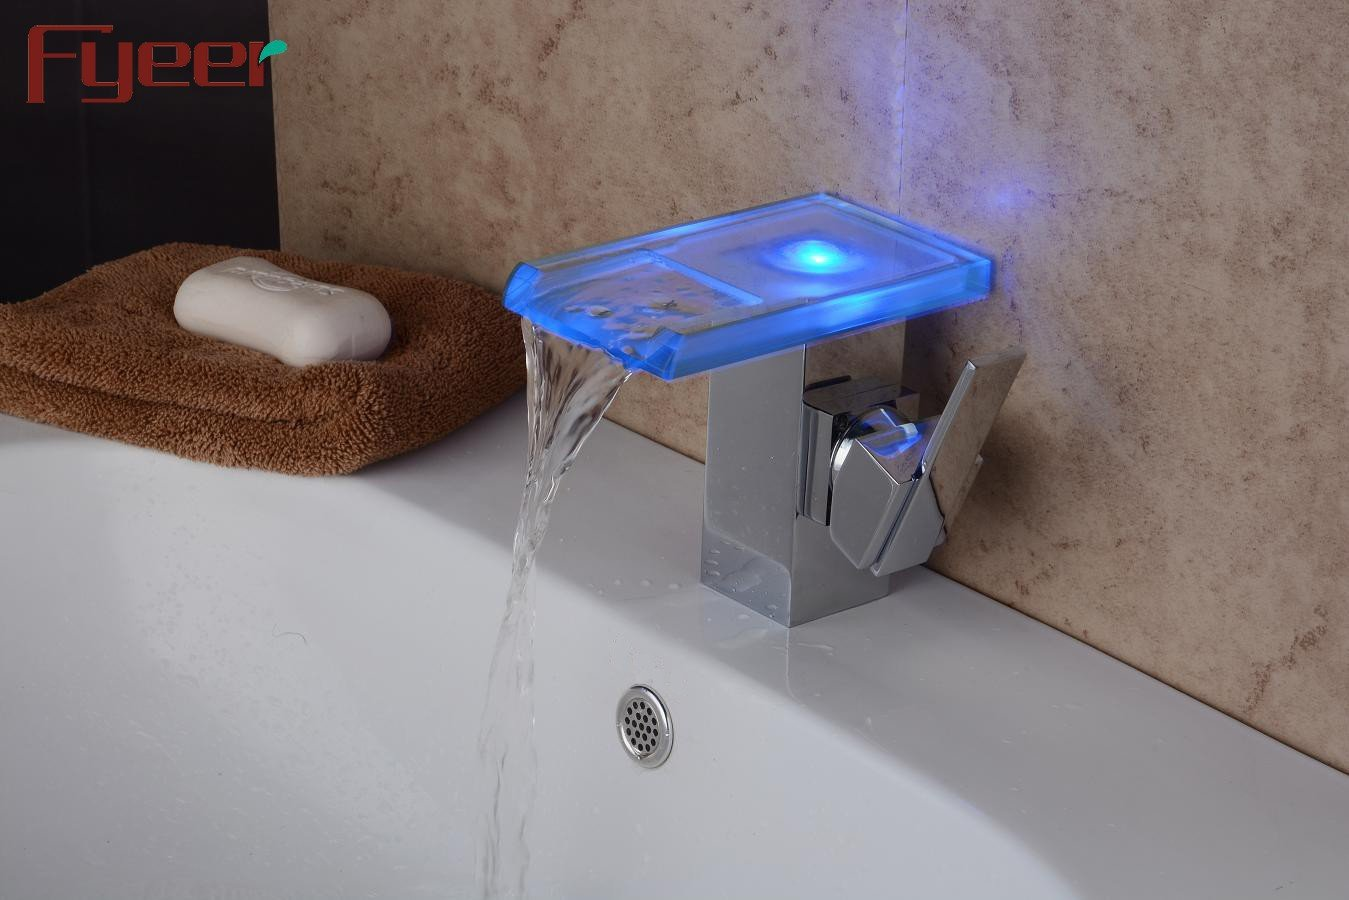 LHbox Basin Mixer Tap Bathroom Sink Faucet Basin taps Hydro Power led Temperature Control Stylish Glass Faucet Basin Waterfall Faucet